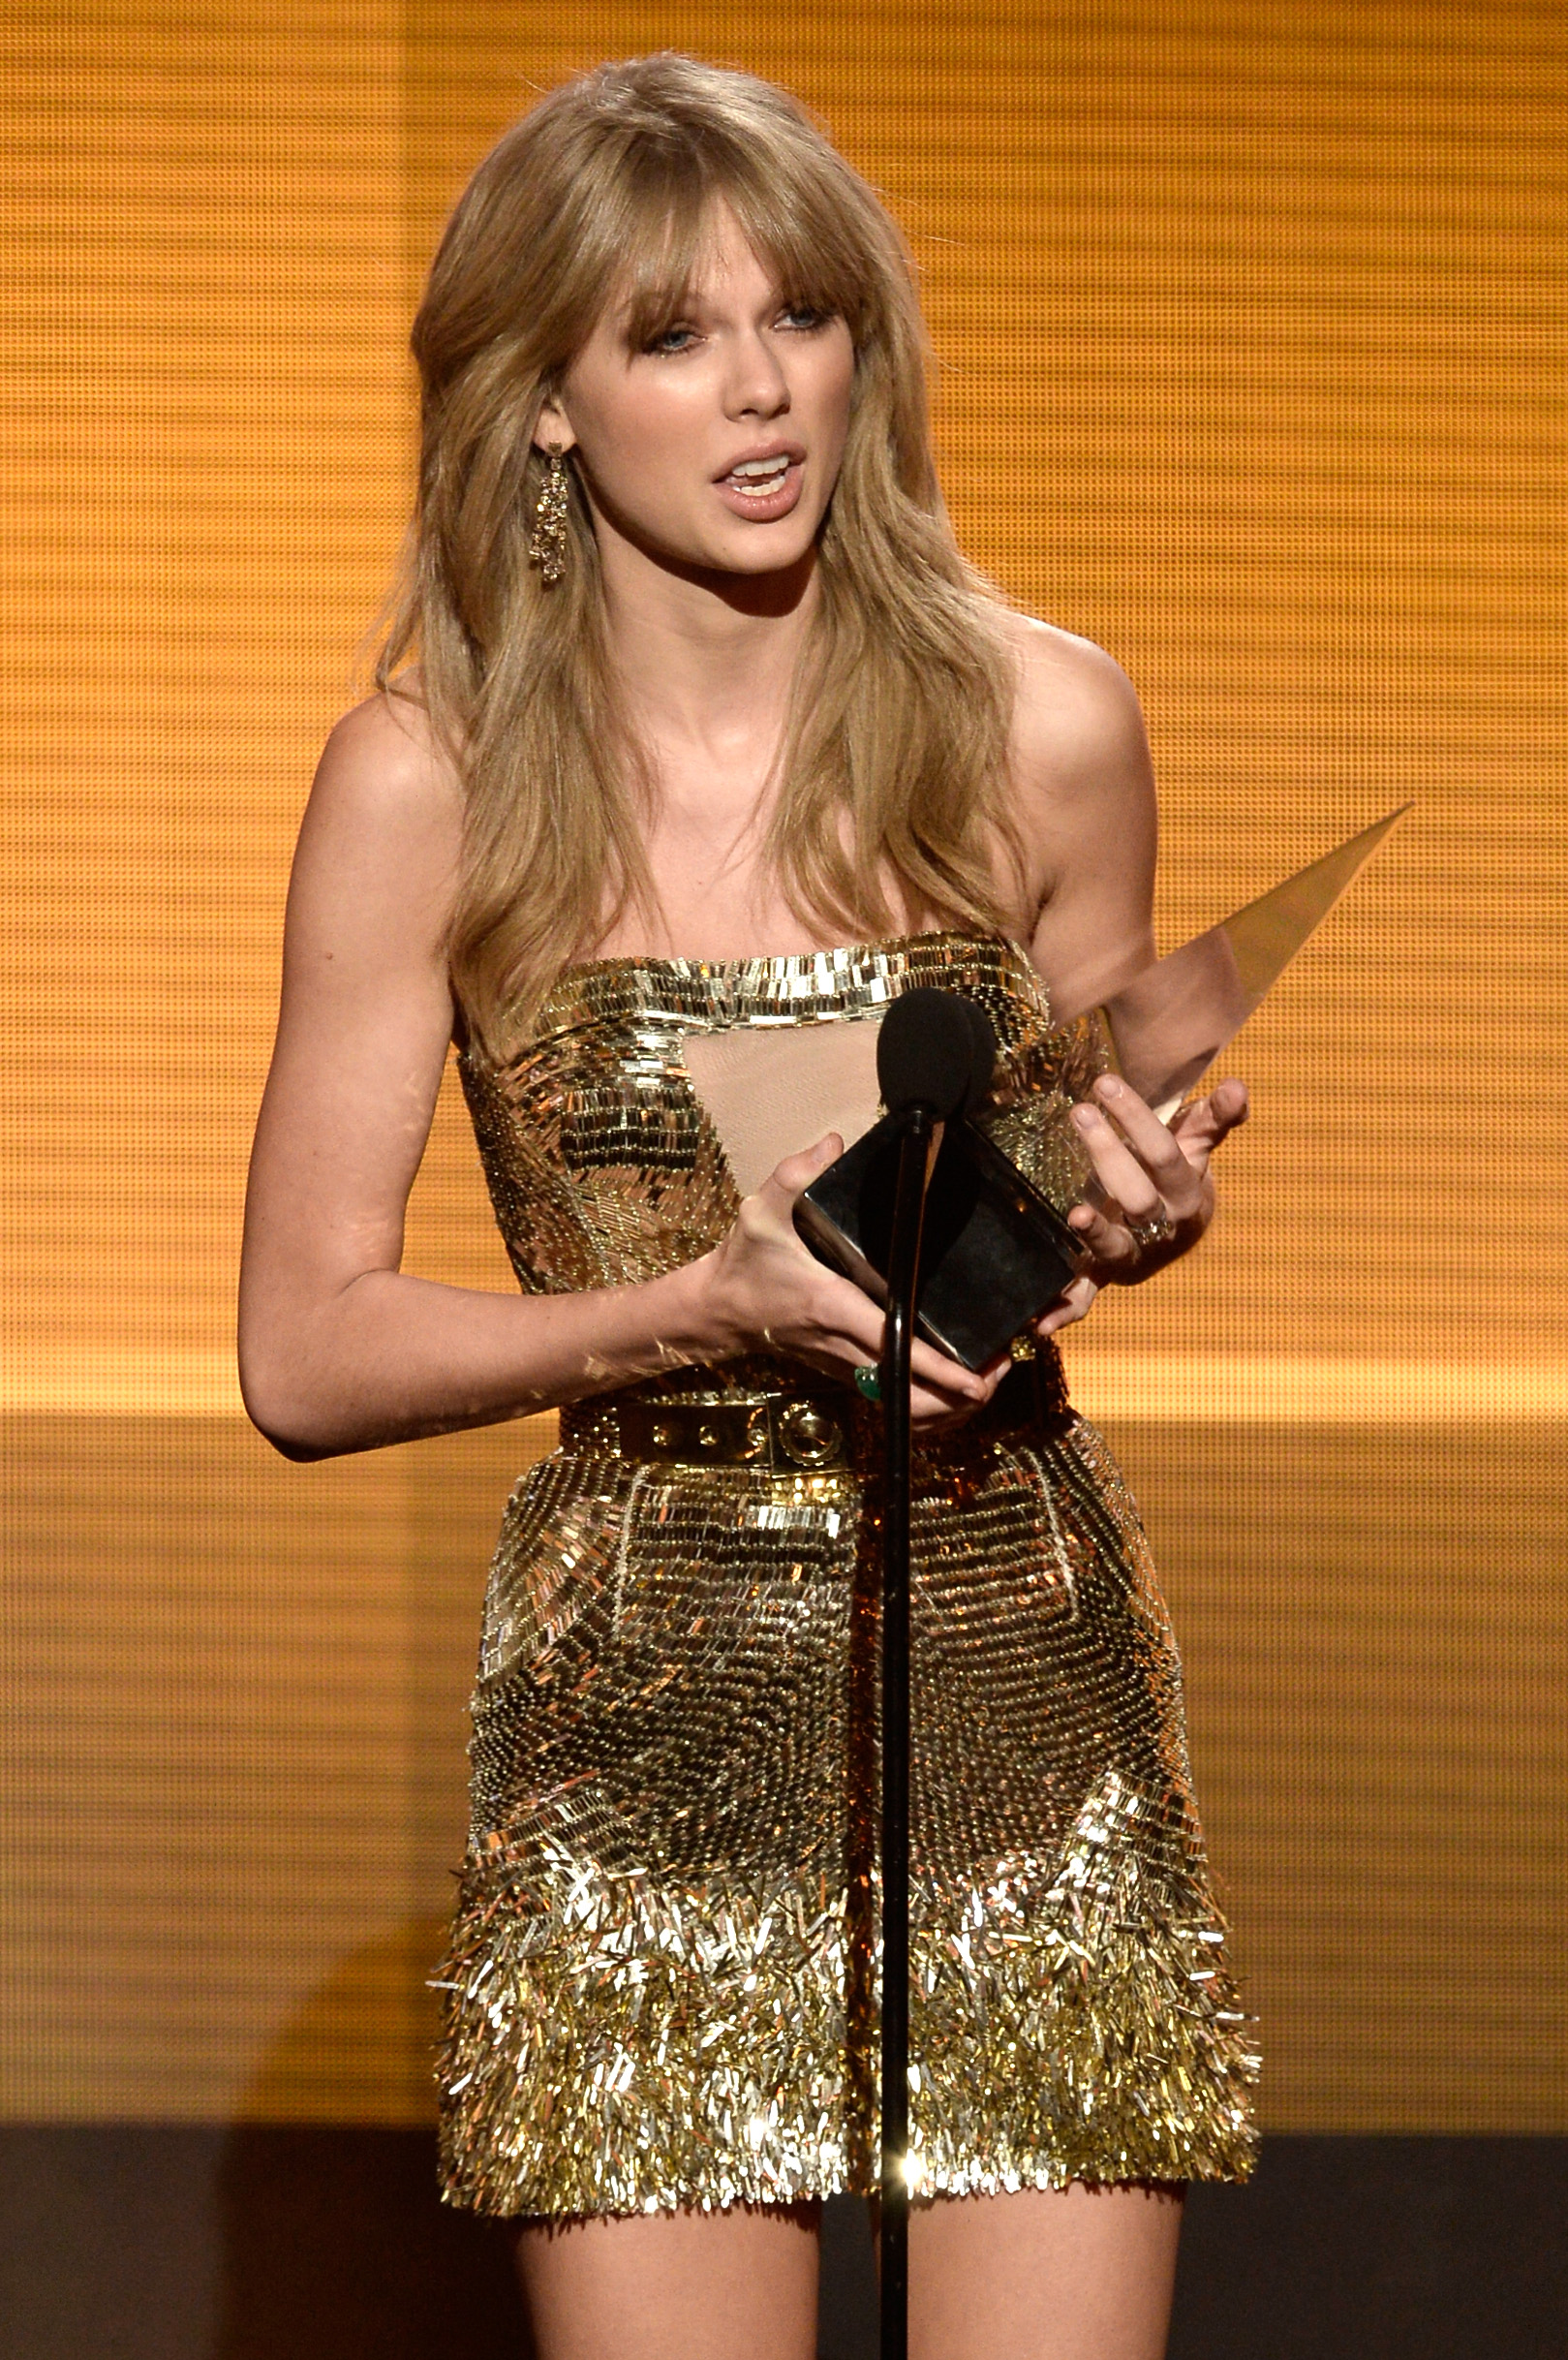 http://taylorpictures.net/albums/app/2013/americanmusicawards/062.jpg